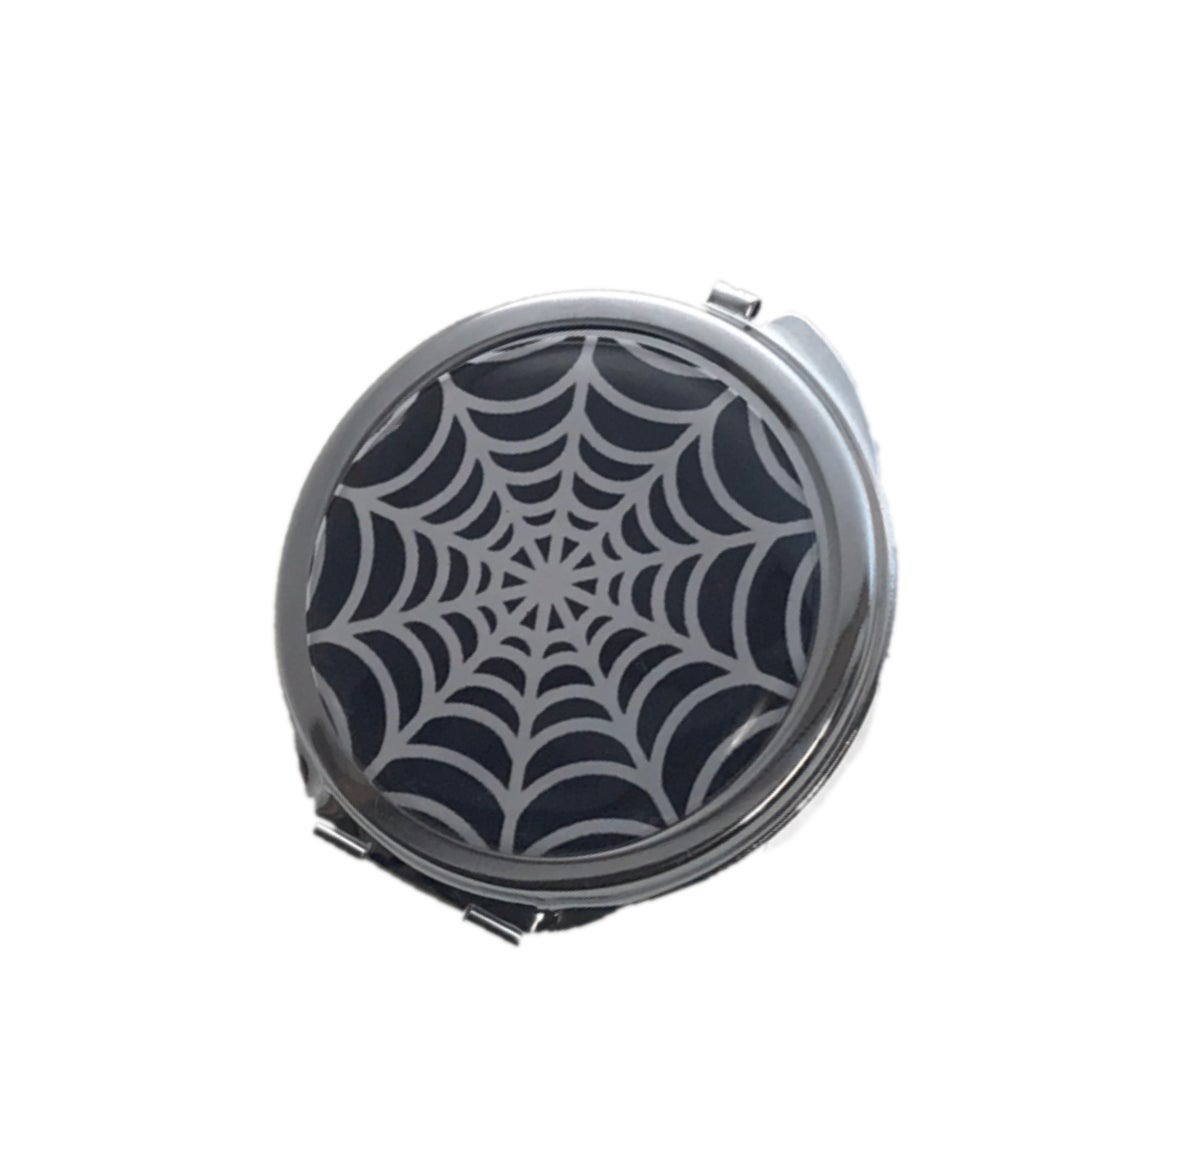 Image of Ghoulish Compact Mirror